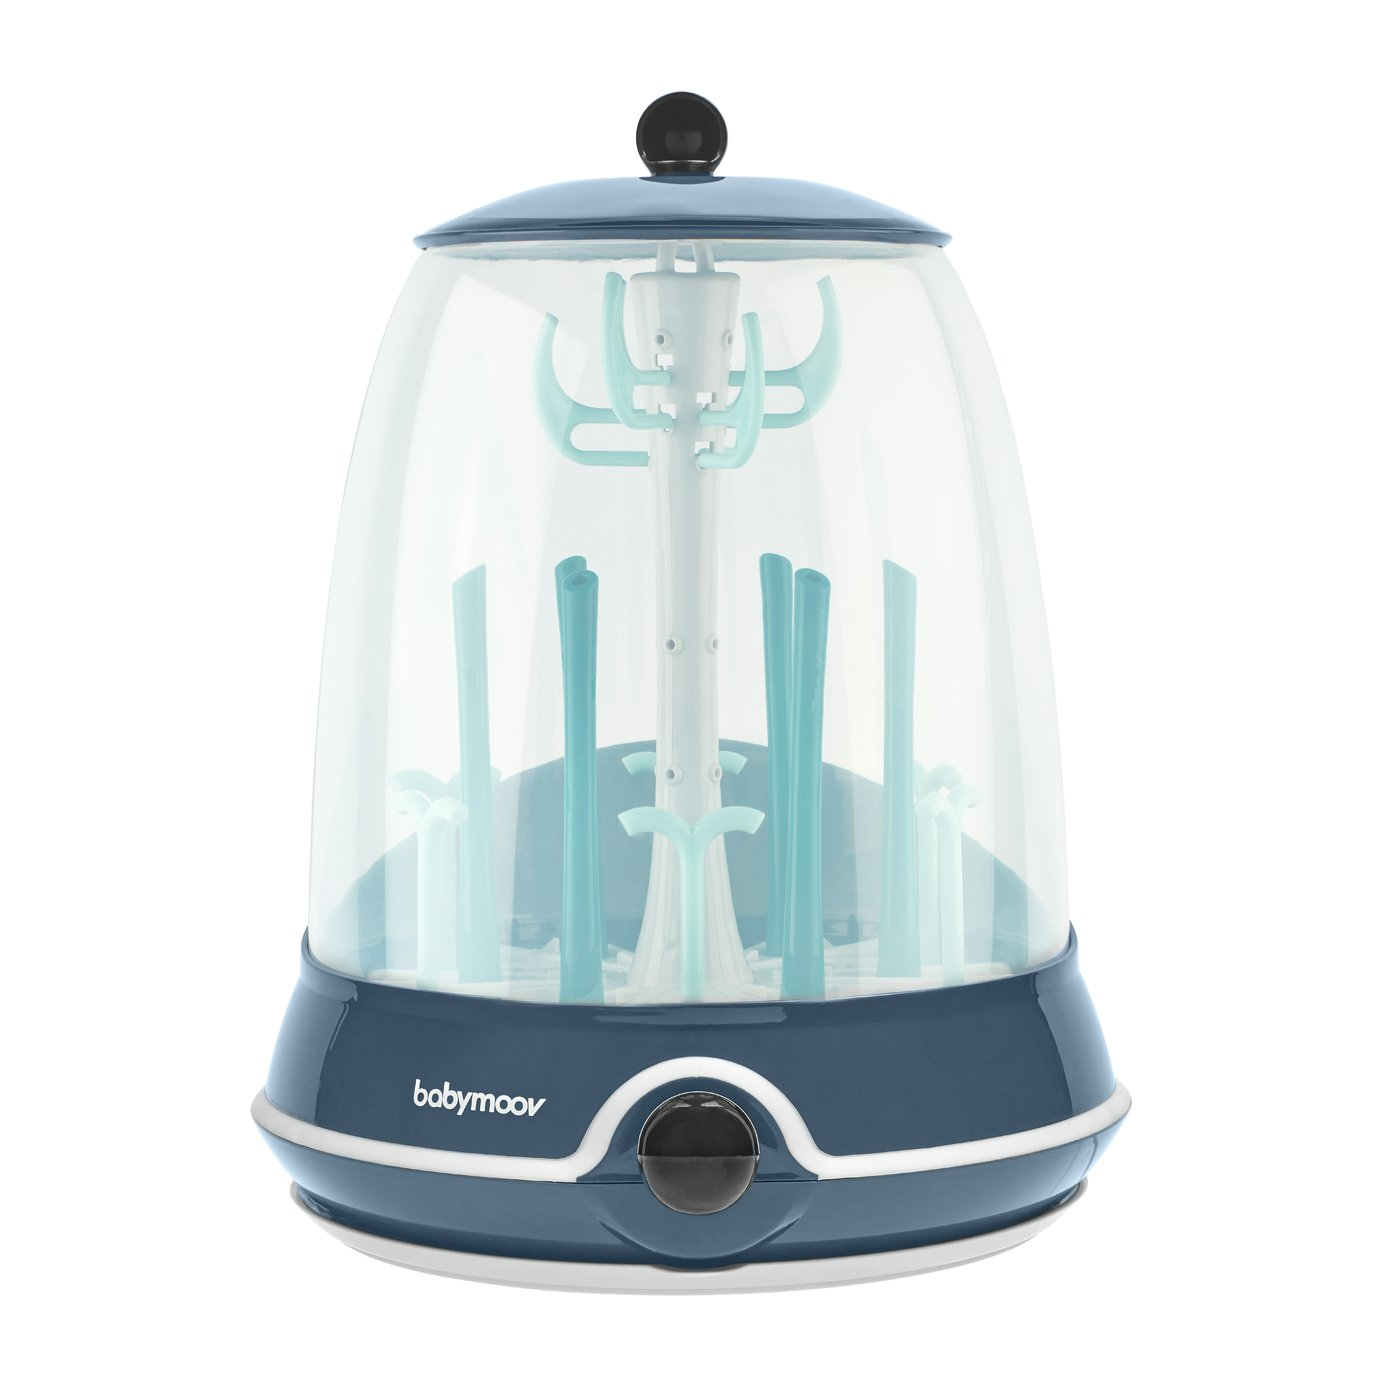 Babymoov Turbo Steam Steriliser